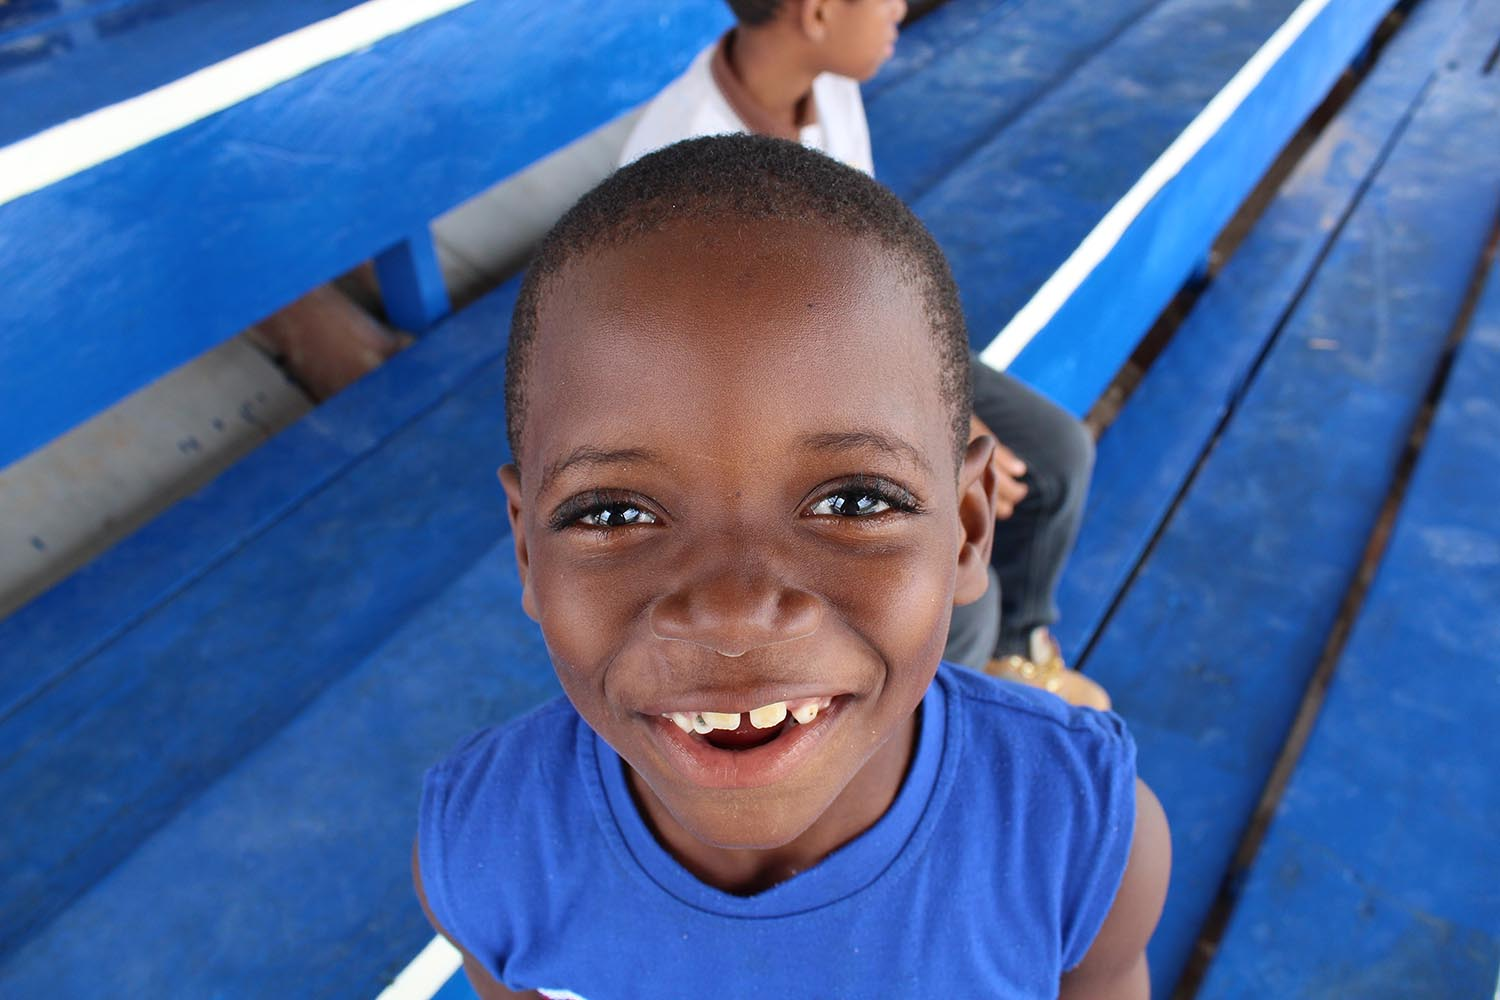 """Shariis Jeffrey '19 won Best Photo of People for her image titled """"Skin Teeth."""" The photo was taken in Linden, Guyana. """"His eyes were smiling at me,"""" Jeffrey said. """"How could I not capture this moment?"""""""